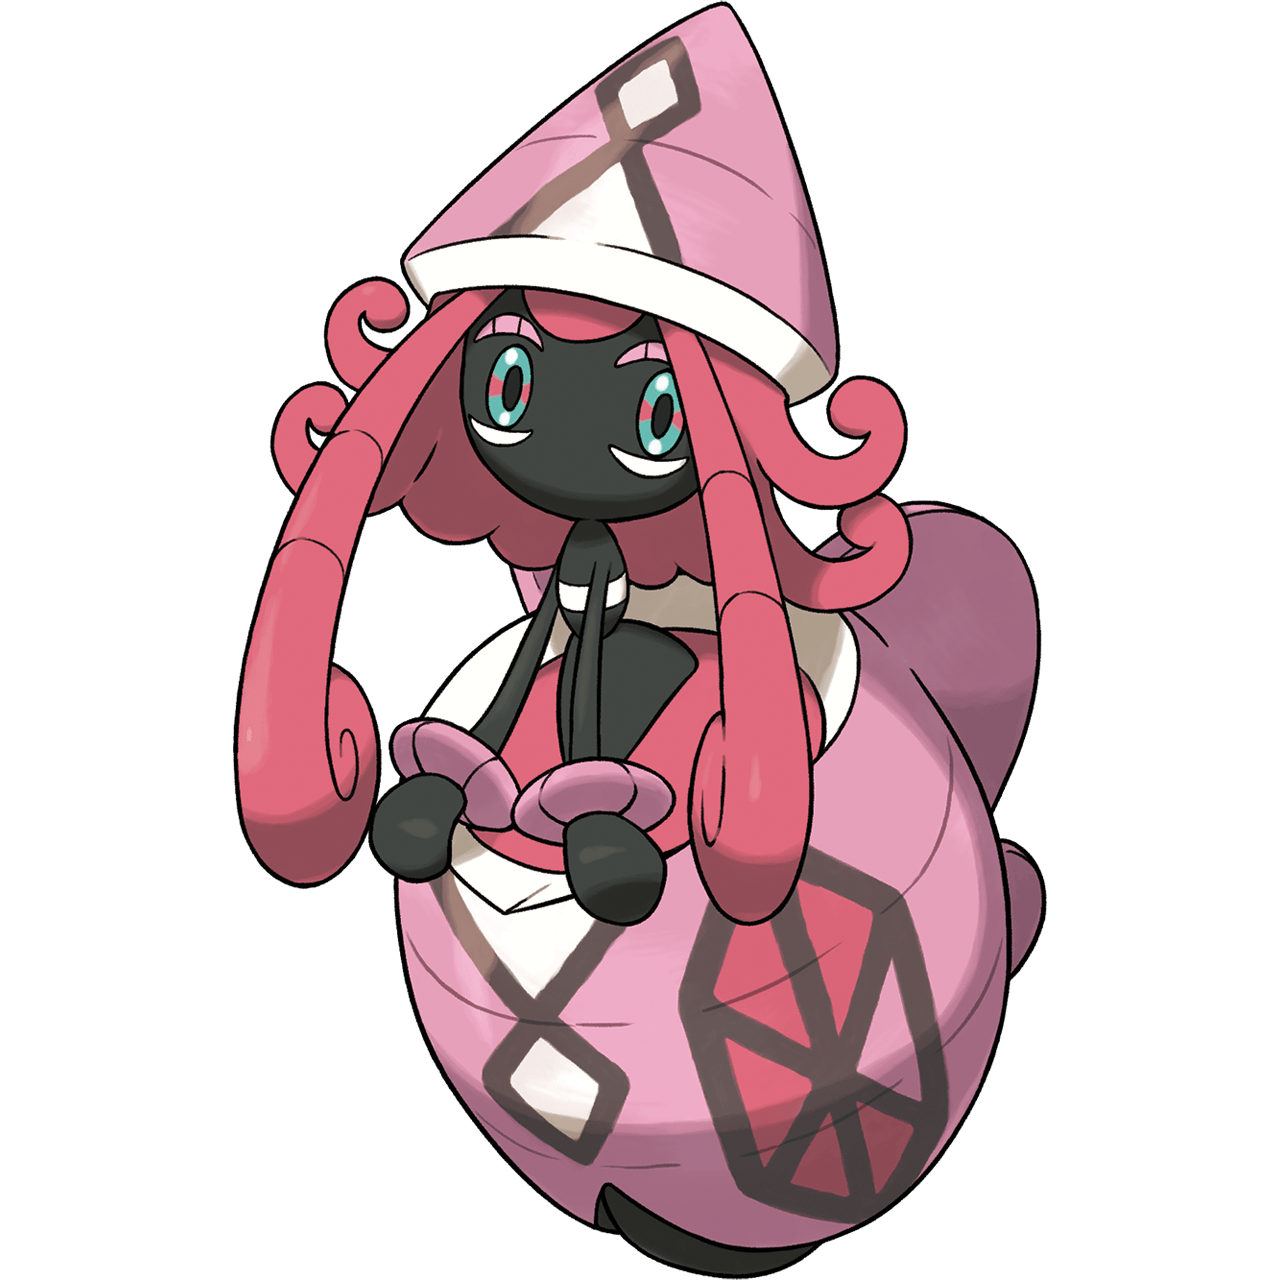 Tapu Lele screenshots, images and pictures - Giant Bomb